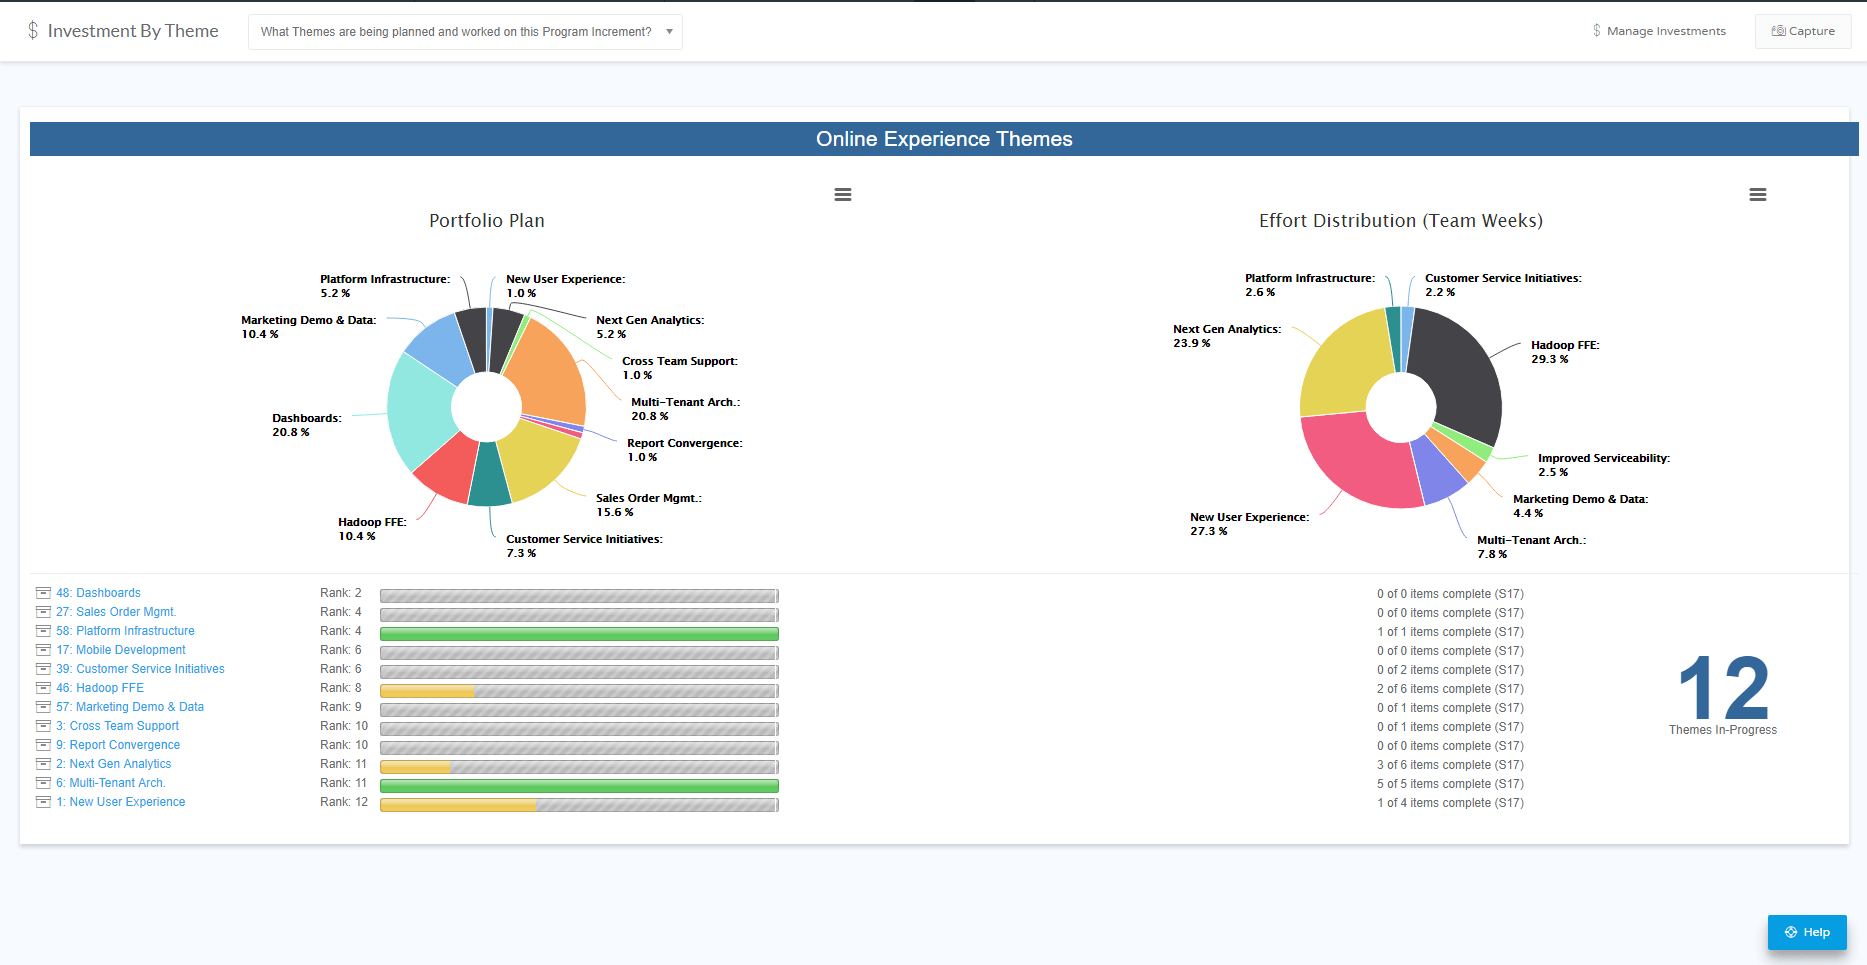 Jira Align Investment by Theme Report